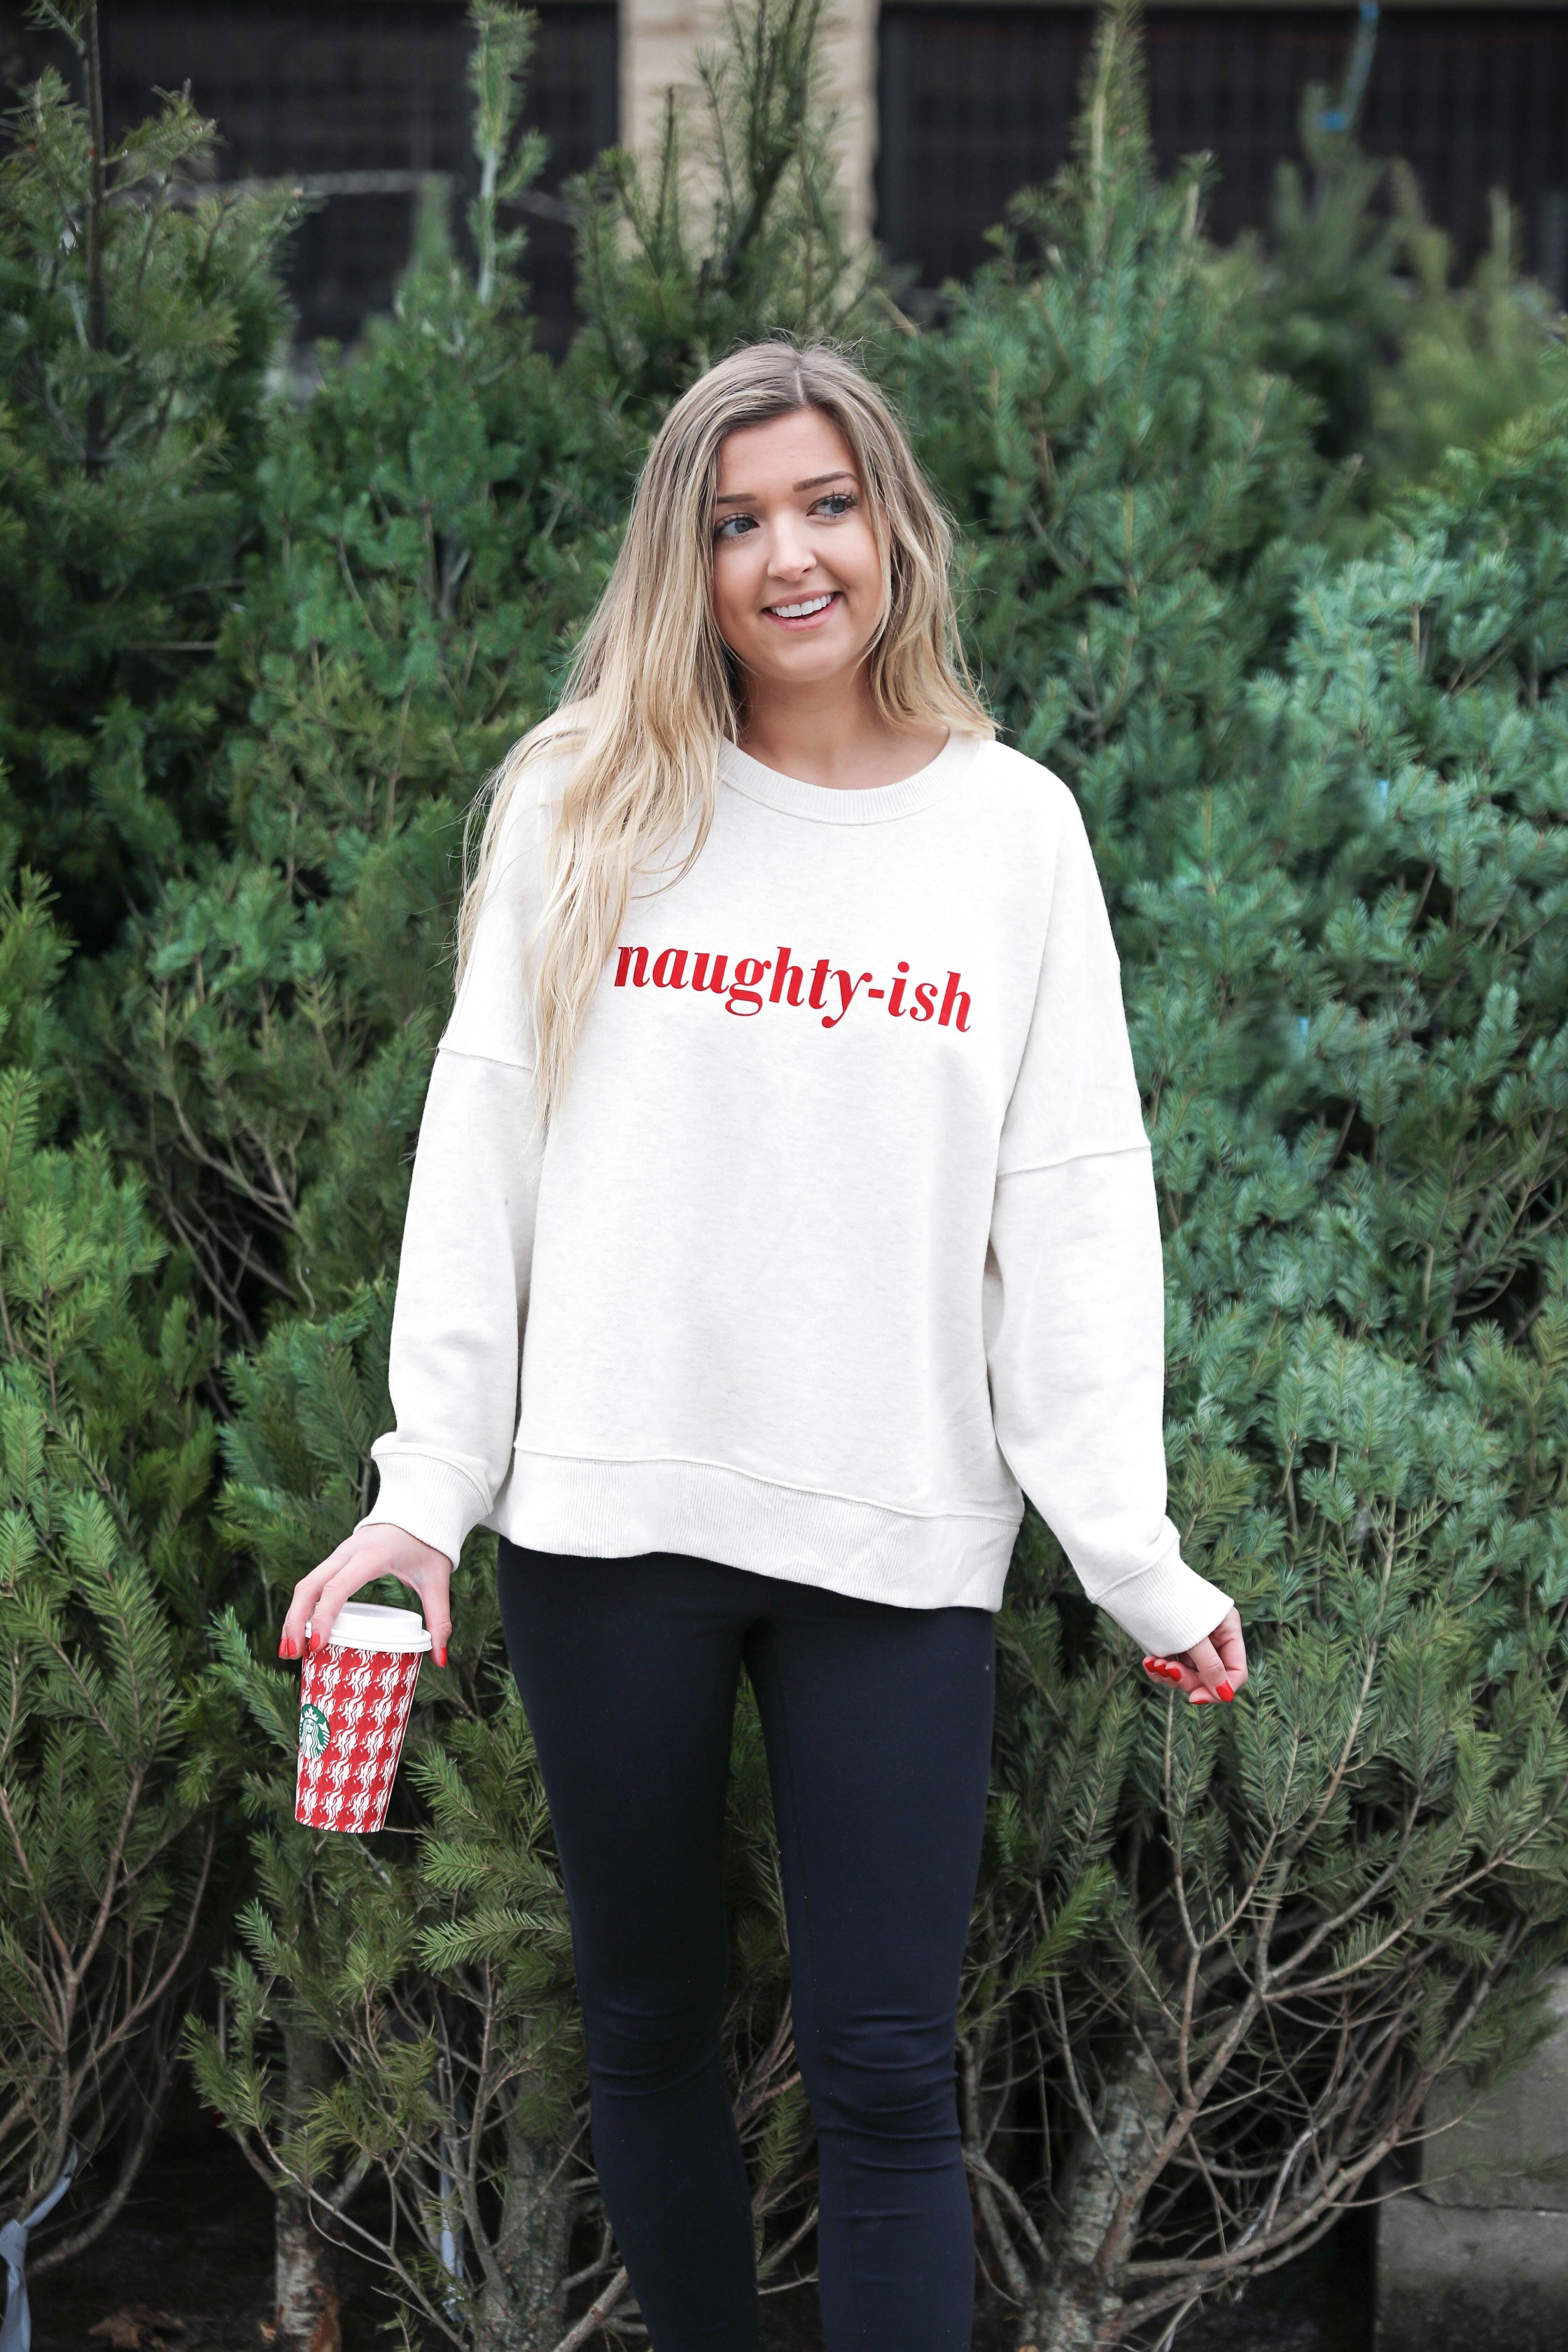 Naughtish and Niceish sweatshirt for the holidays! I love all the funny naught and nice holiday outfits going around right now! This sweatshirt is so comfortable! It would be a cute christmas and funny ugly christmas sweater! Such a fun casual winter outfit! Details from kansas city fashion blog daily dose of charm by lauren lindmark